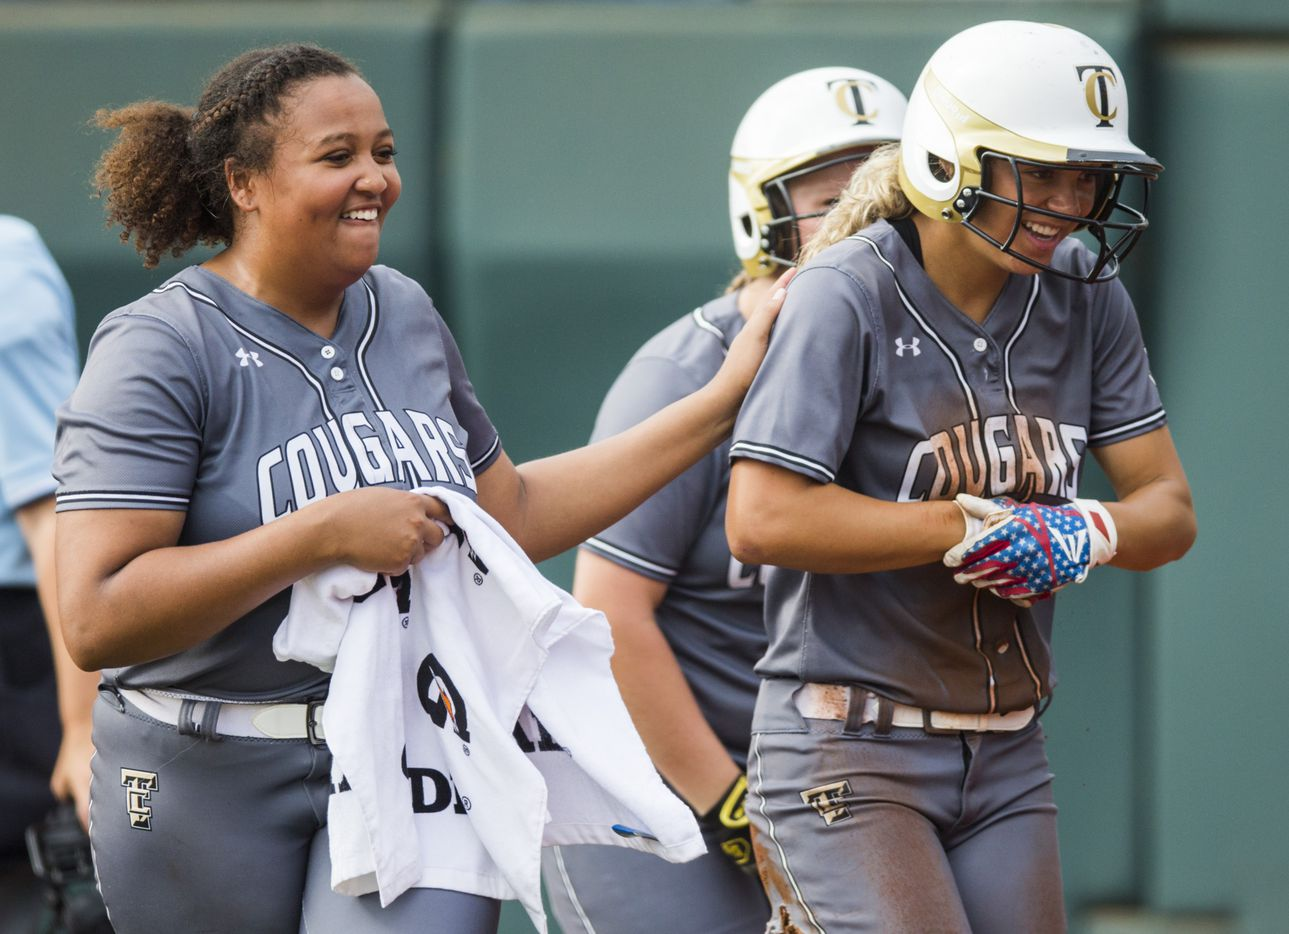 The Colony's Jayda Coleman (10, right) celebrates a run with pitcher Karlie Charles (29) during the first inning of a UIL Class 5A state semifinal softball game between The Colony and Corpus Christi Calallen on Friday, May 31, 2019 at Red & Charline McCombs Field at the University of Texas in Austin. (Ashley Landis/The Dallas Morning News)